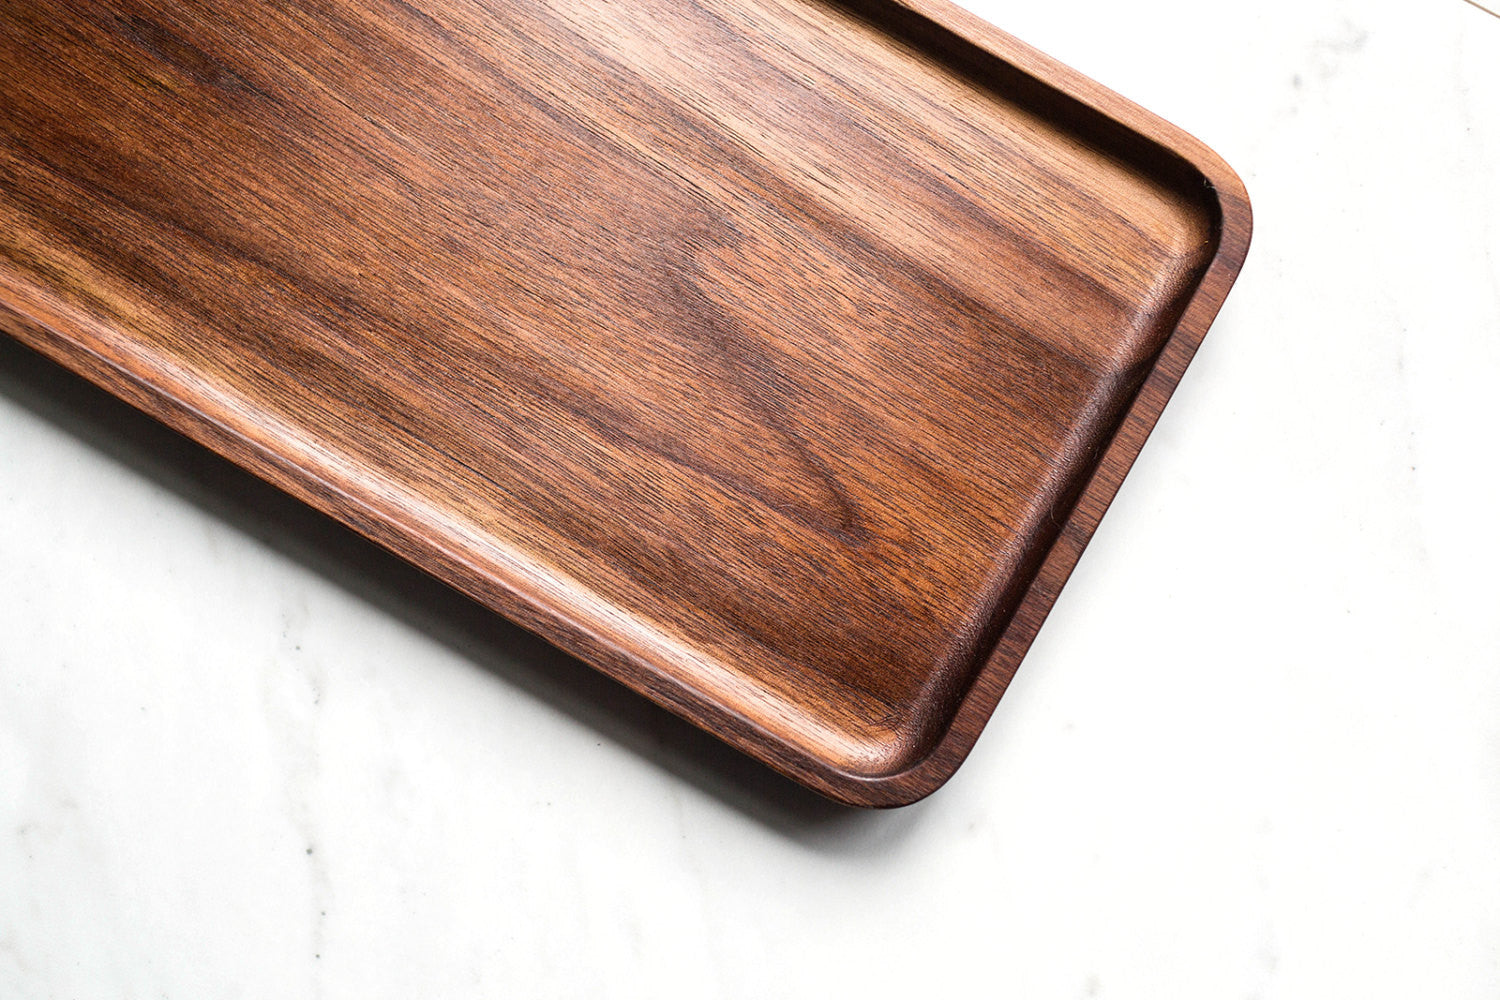 Catchall Tray / Valet Tray, Multi-Purpose, Walnut Wood, Cafe Food Tray, Food Safe, Handcrafted, Handmade, Made in Canada